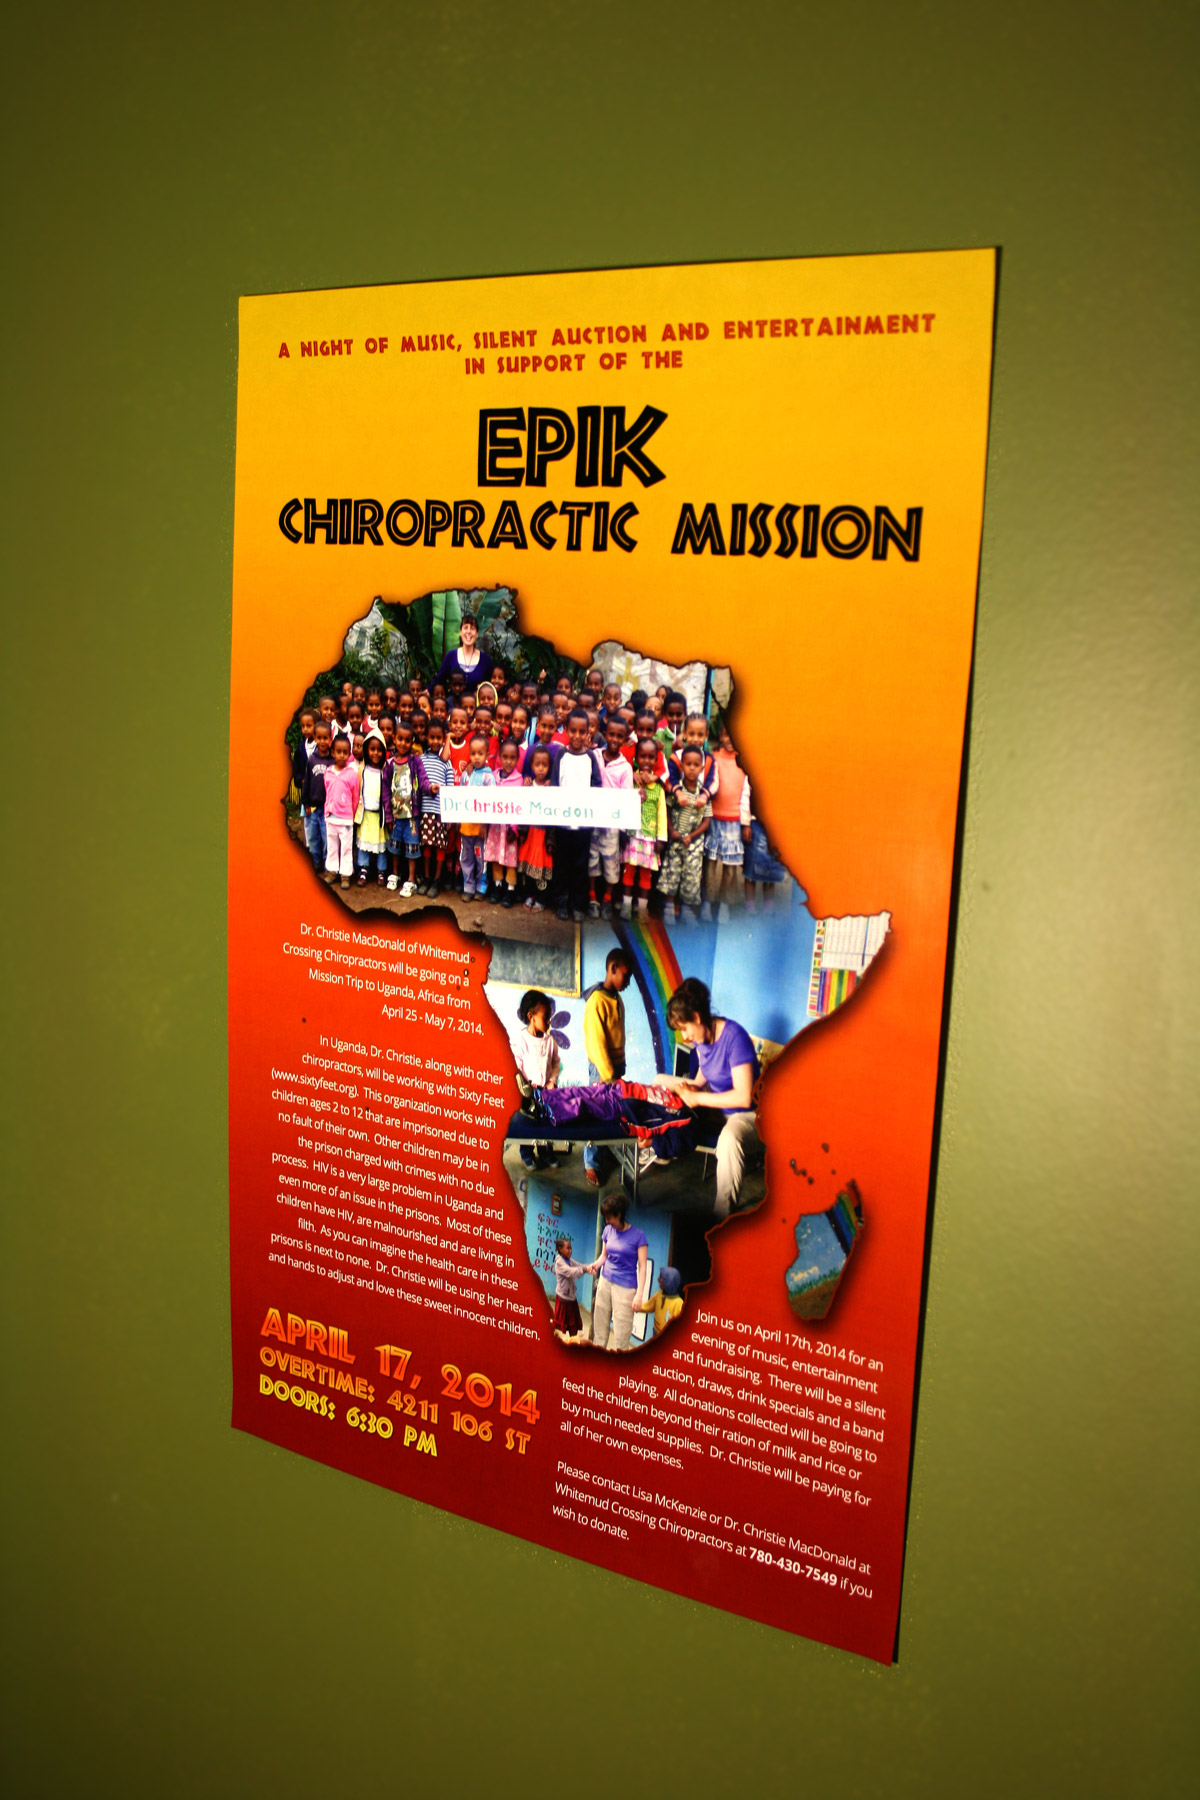 A poster hung on a wall designed to promote Dr. Christie MacDonald's trip to Uganda, Africa.